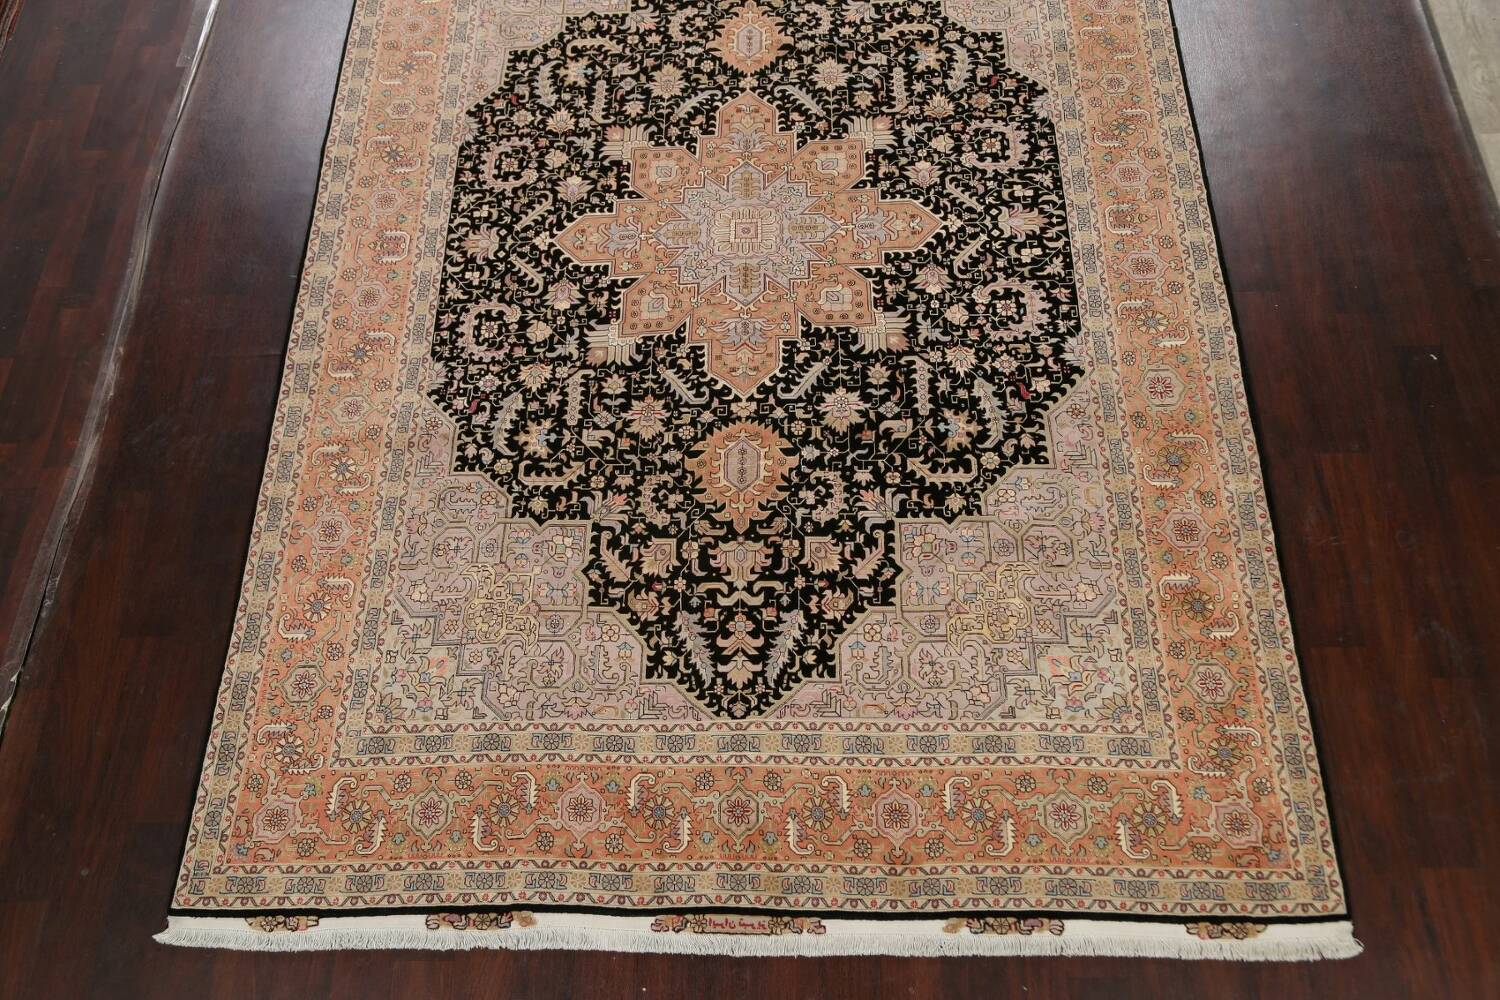 100% Vegetable Dye Tabriz Signed Persian Area Rug 8x12 image 8